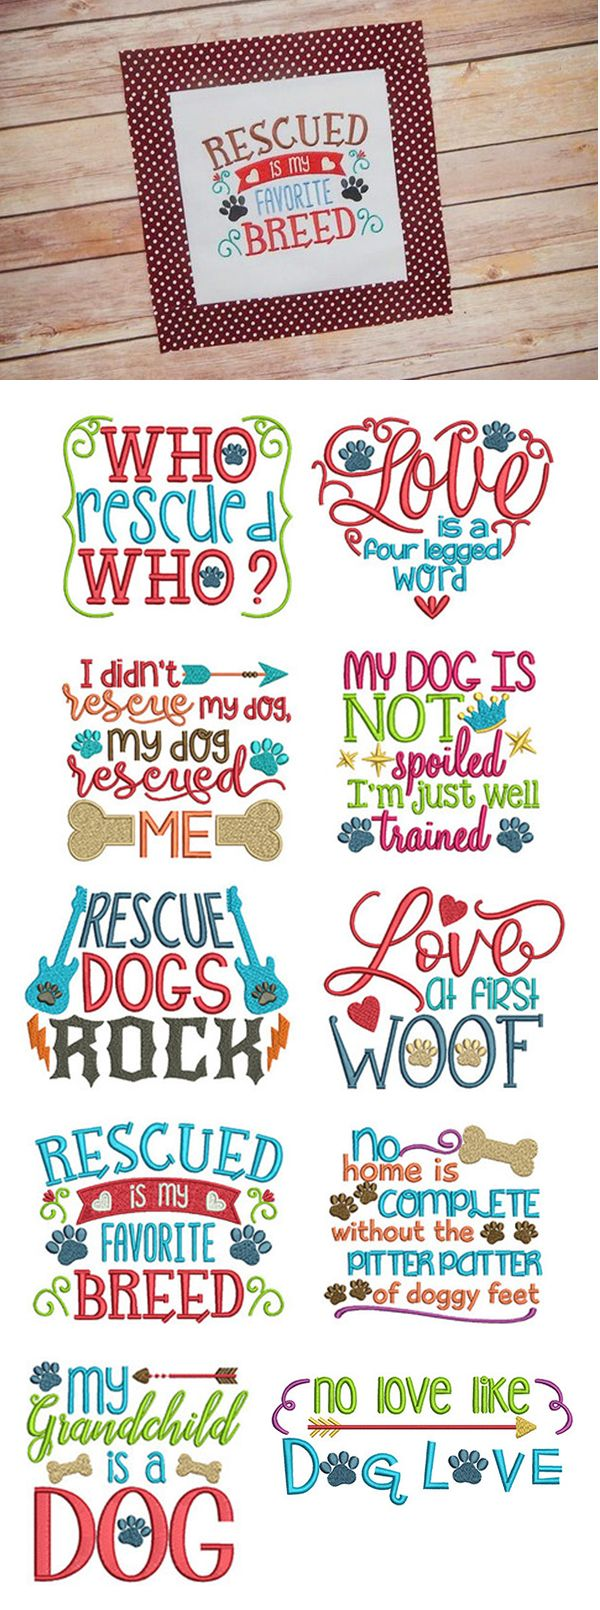 Our Dog Sayings Set 2 design set includes 10 MORE sayings for man's (or woman's) best friend! Each available in 4 sizes: 4x4, 5x7, 6x10, and 8x8. Available for instant download at www.designsbyjuju.com